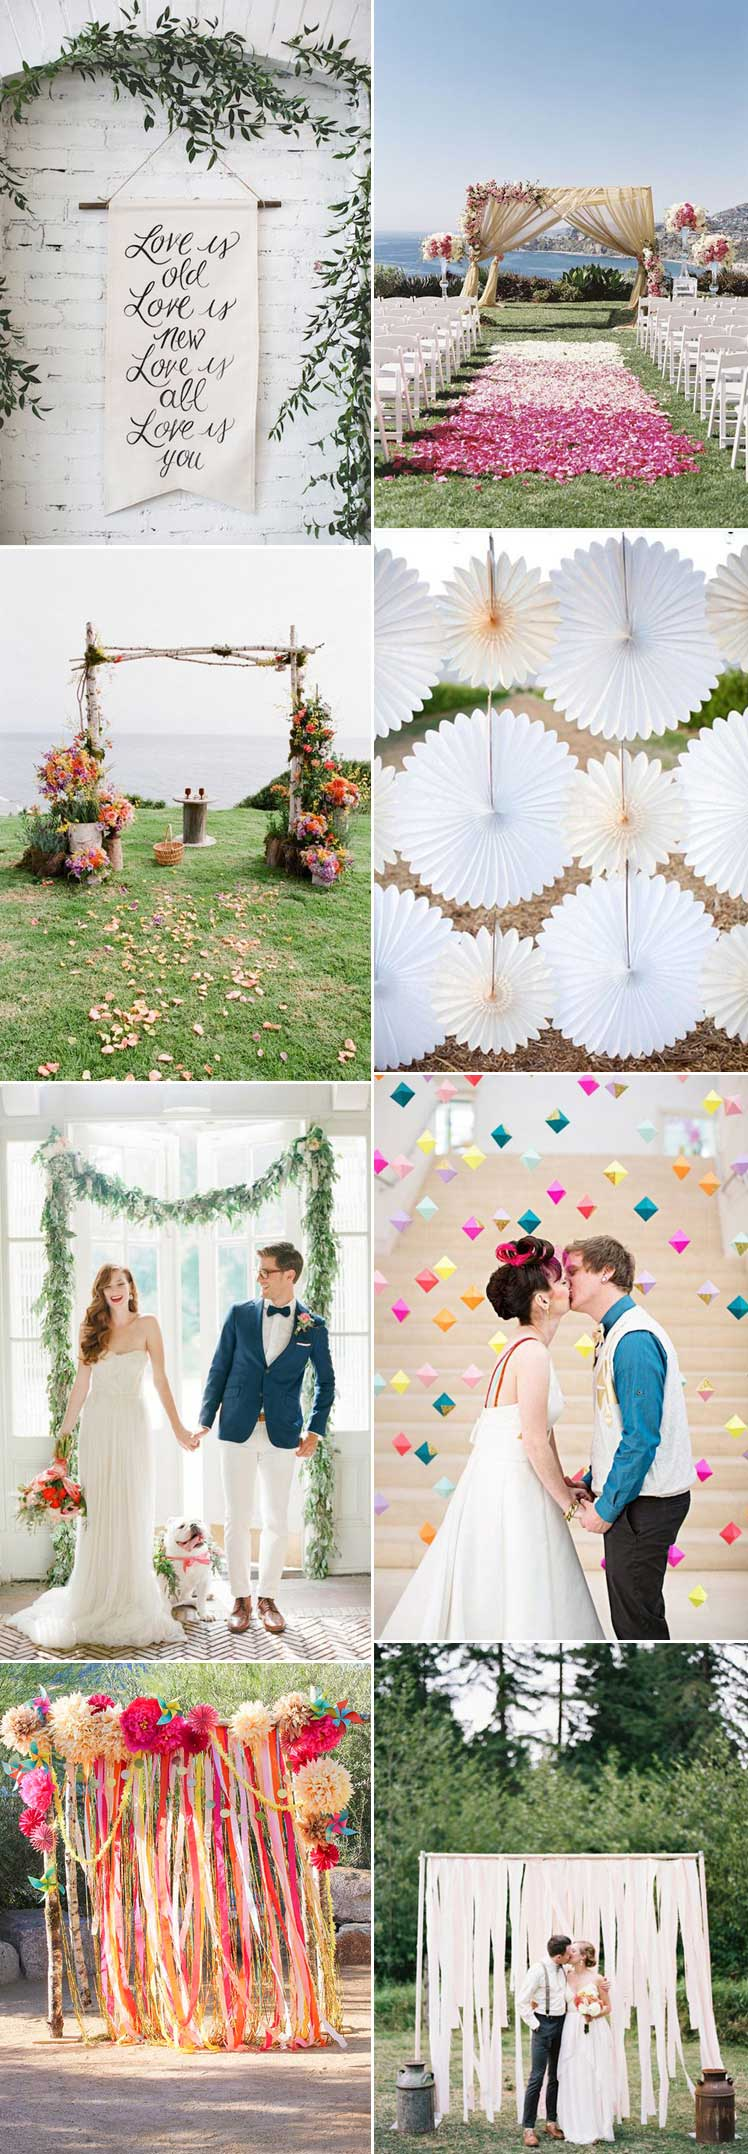 Inspiration for wedding backdrop decor